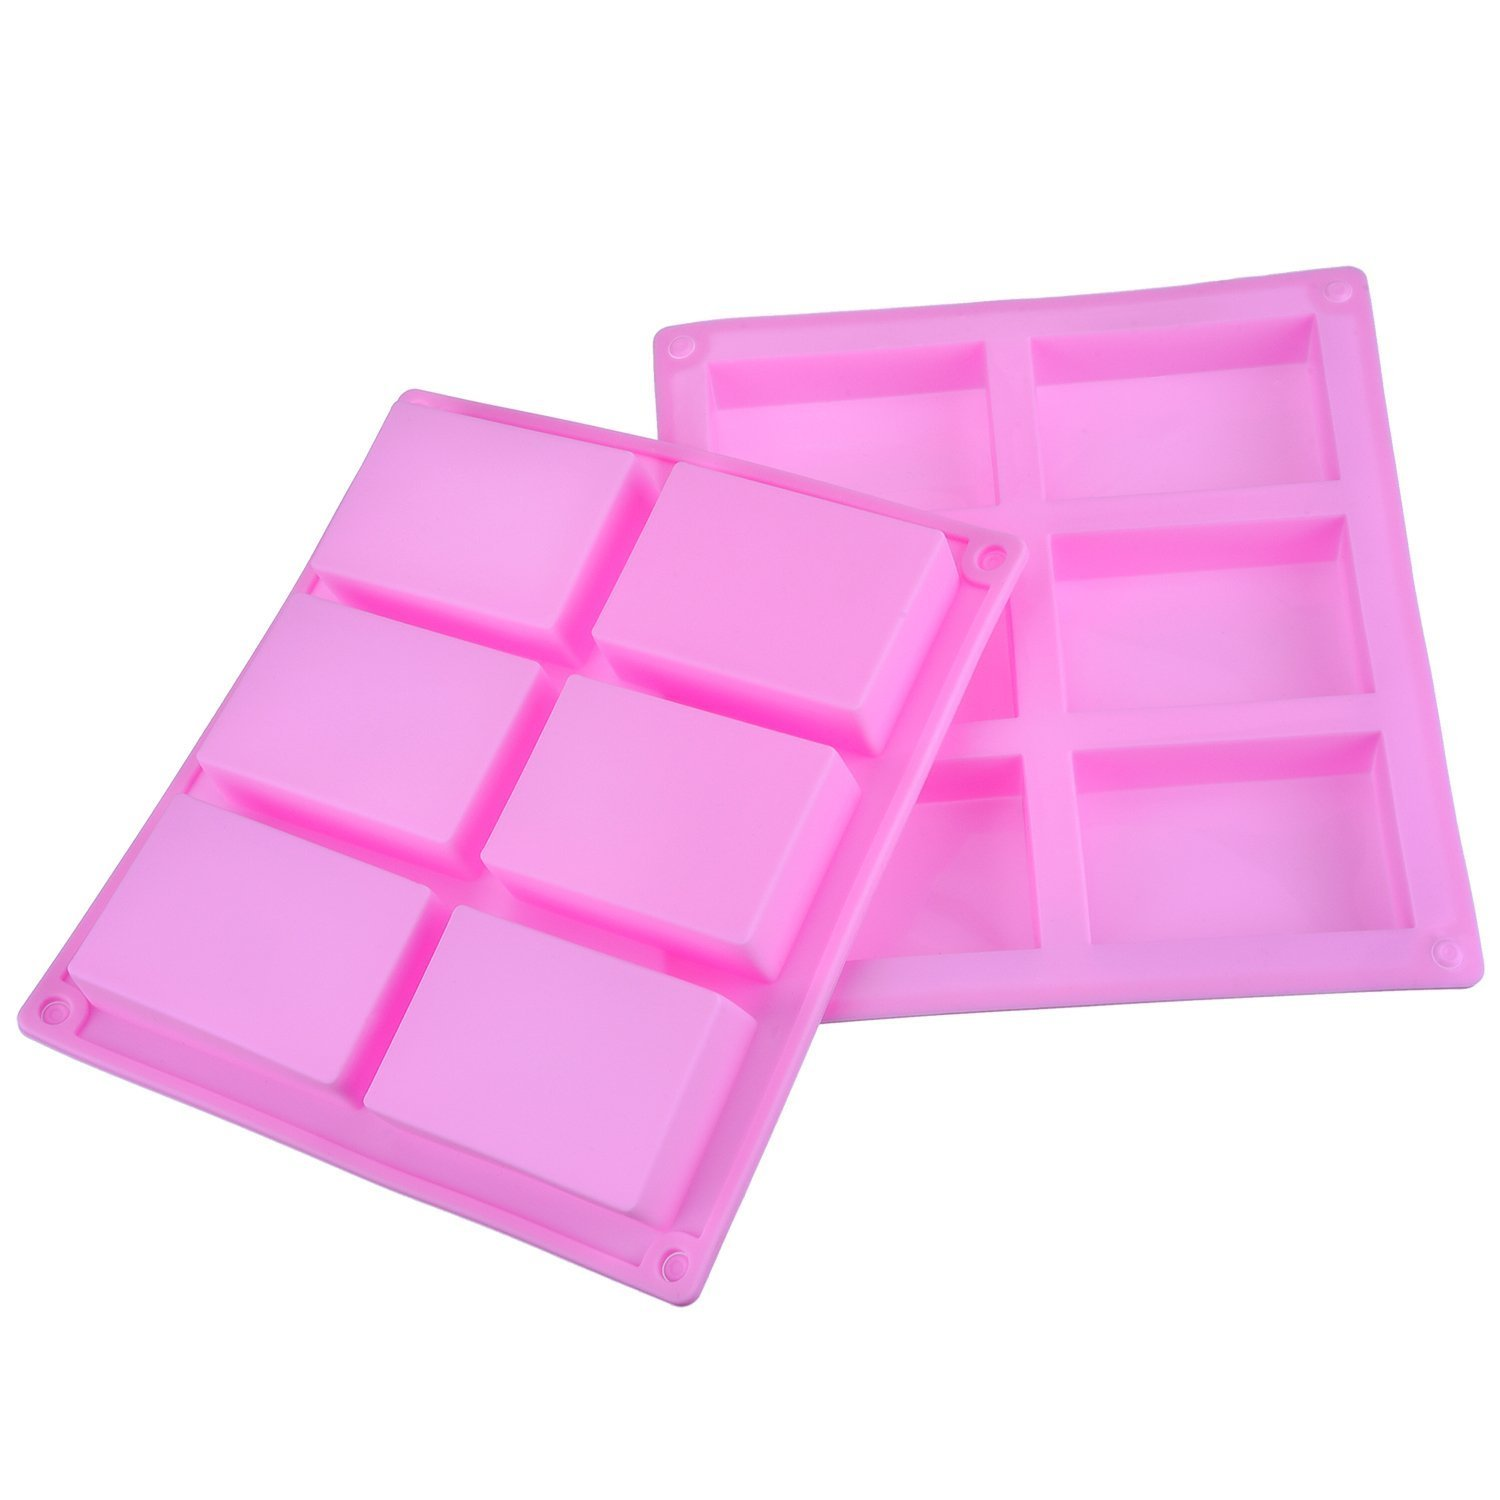 6 Cavity Silicone Rectangle Mold Soap Mold for Cake, Bread, Biscuit, Chocolate, 2 Pack (Pink) Outus